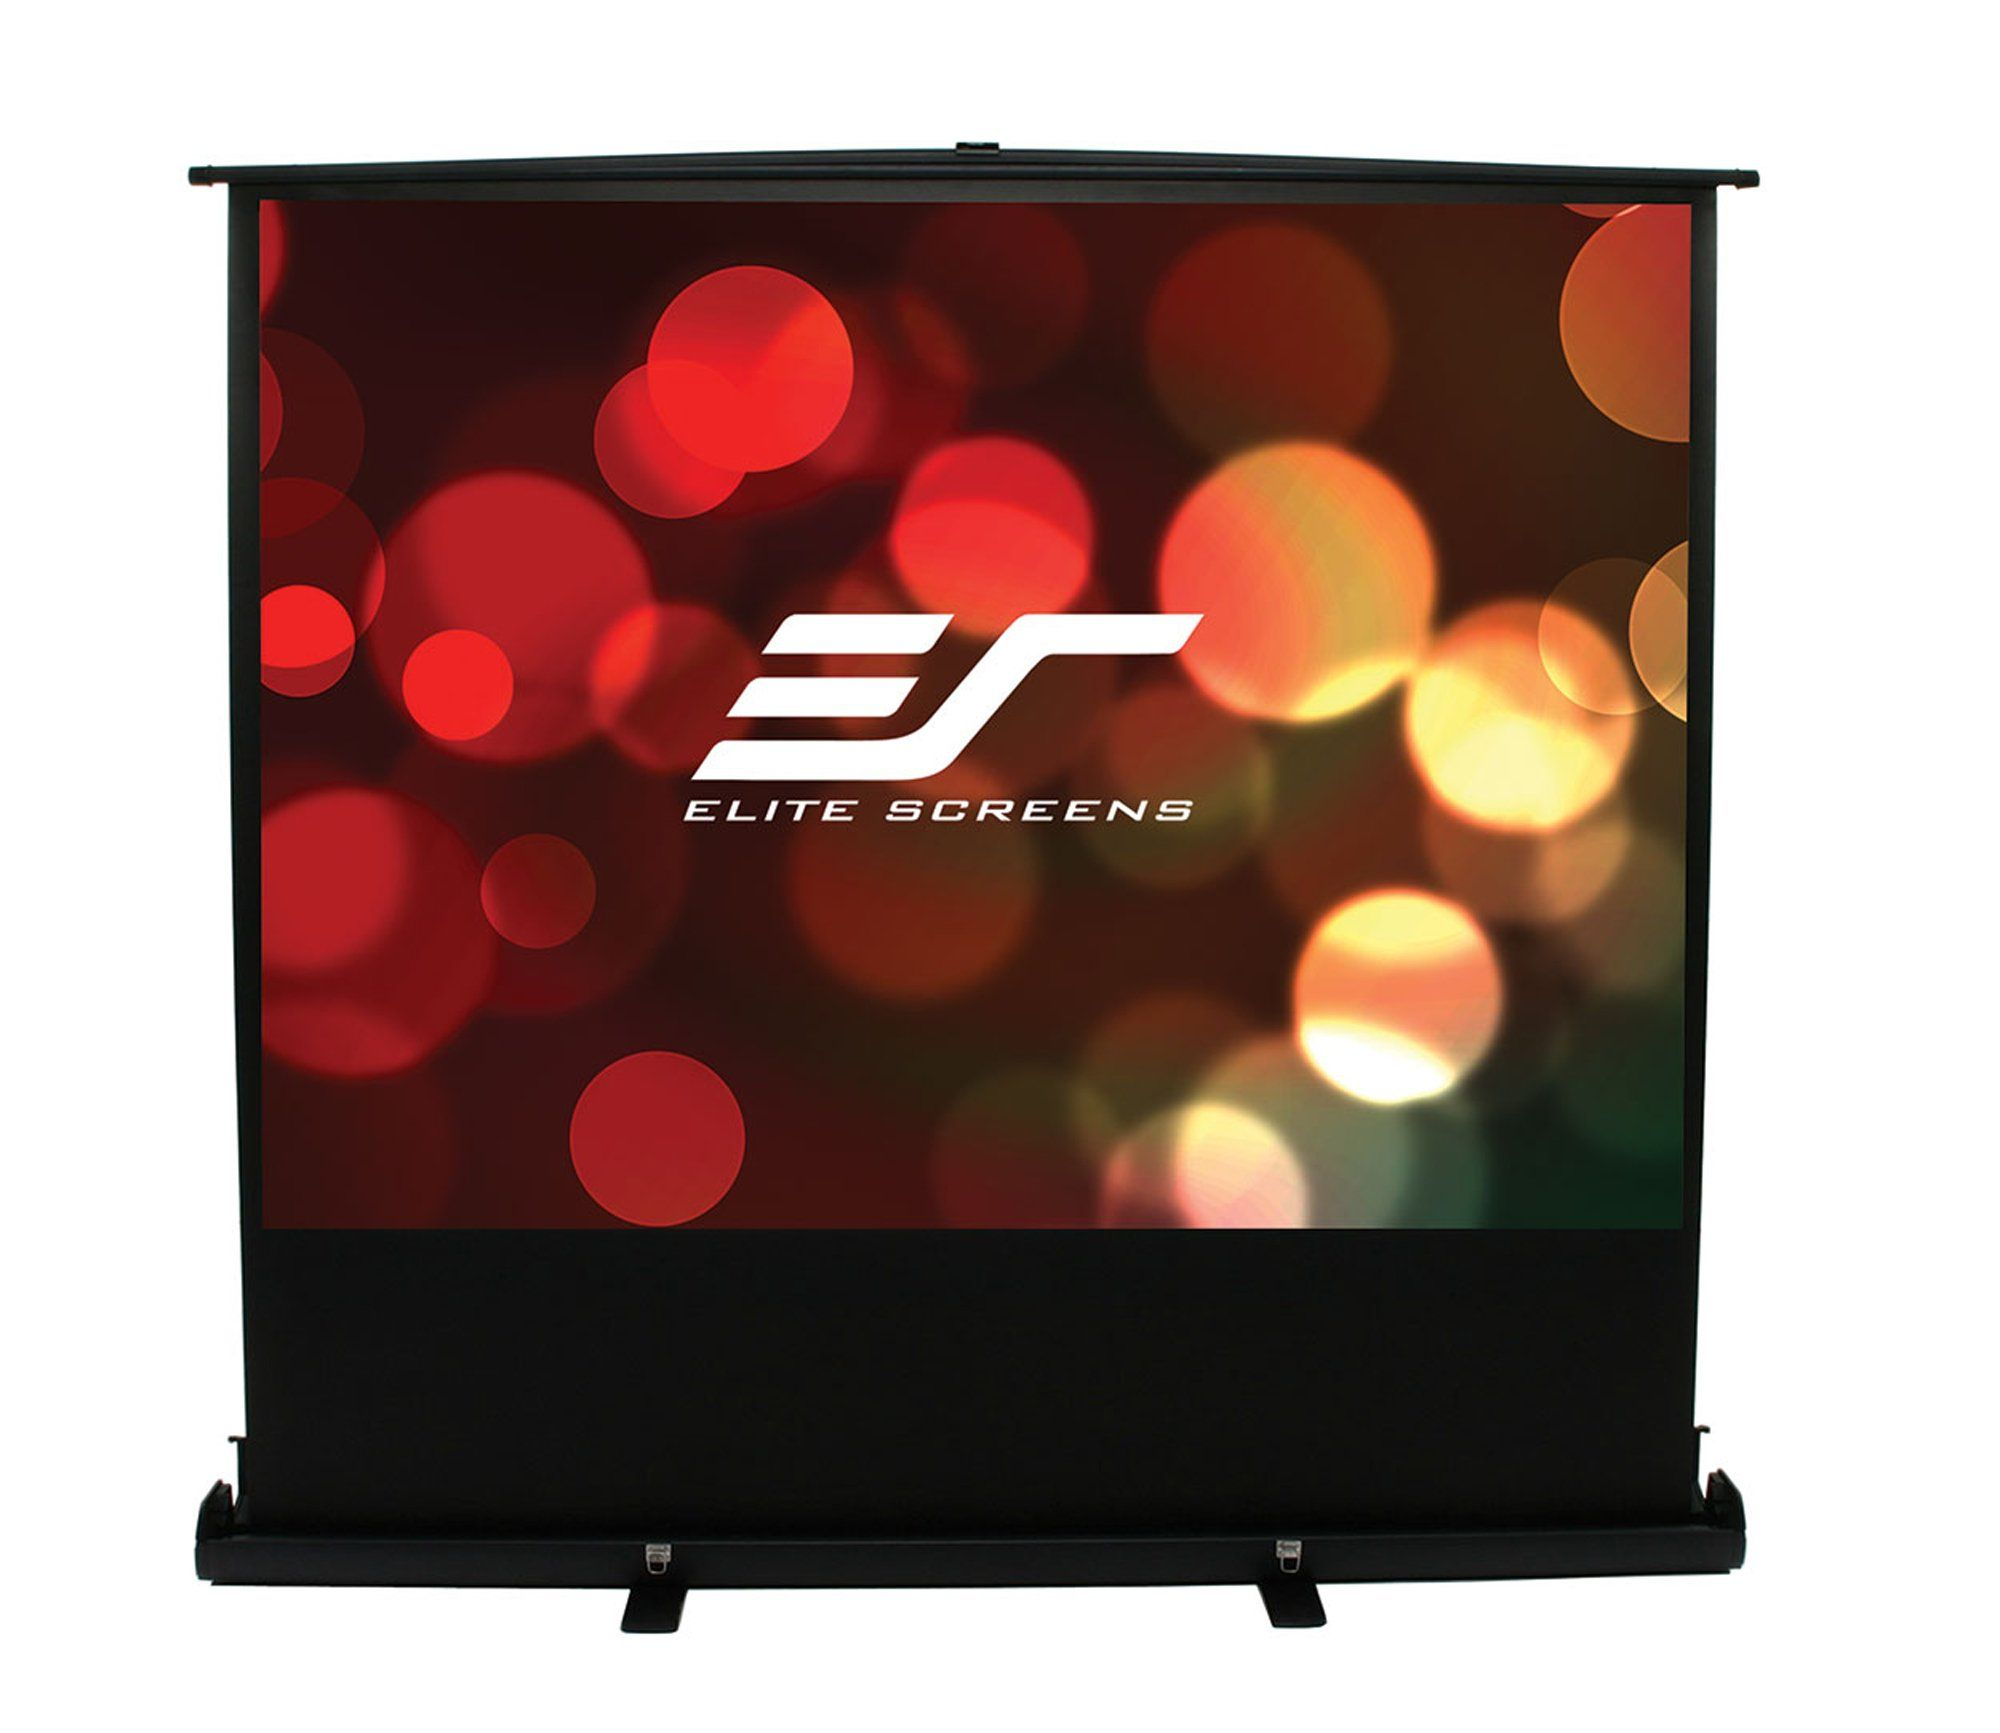 Elite Screens Ezcinema Plus Series 100 Inch Diagonal 16 9 Floor Pull Up Portable Projection Screen Model F100xwh1 Projection Screen Outdoor Screens Outdoor Movie Screen